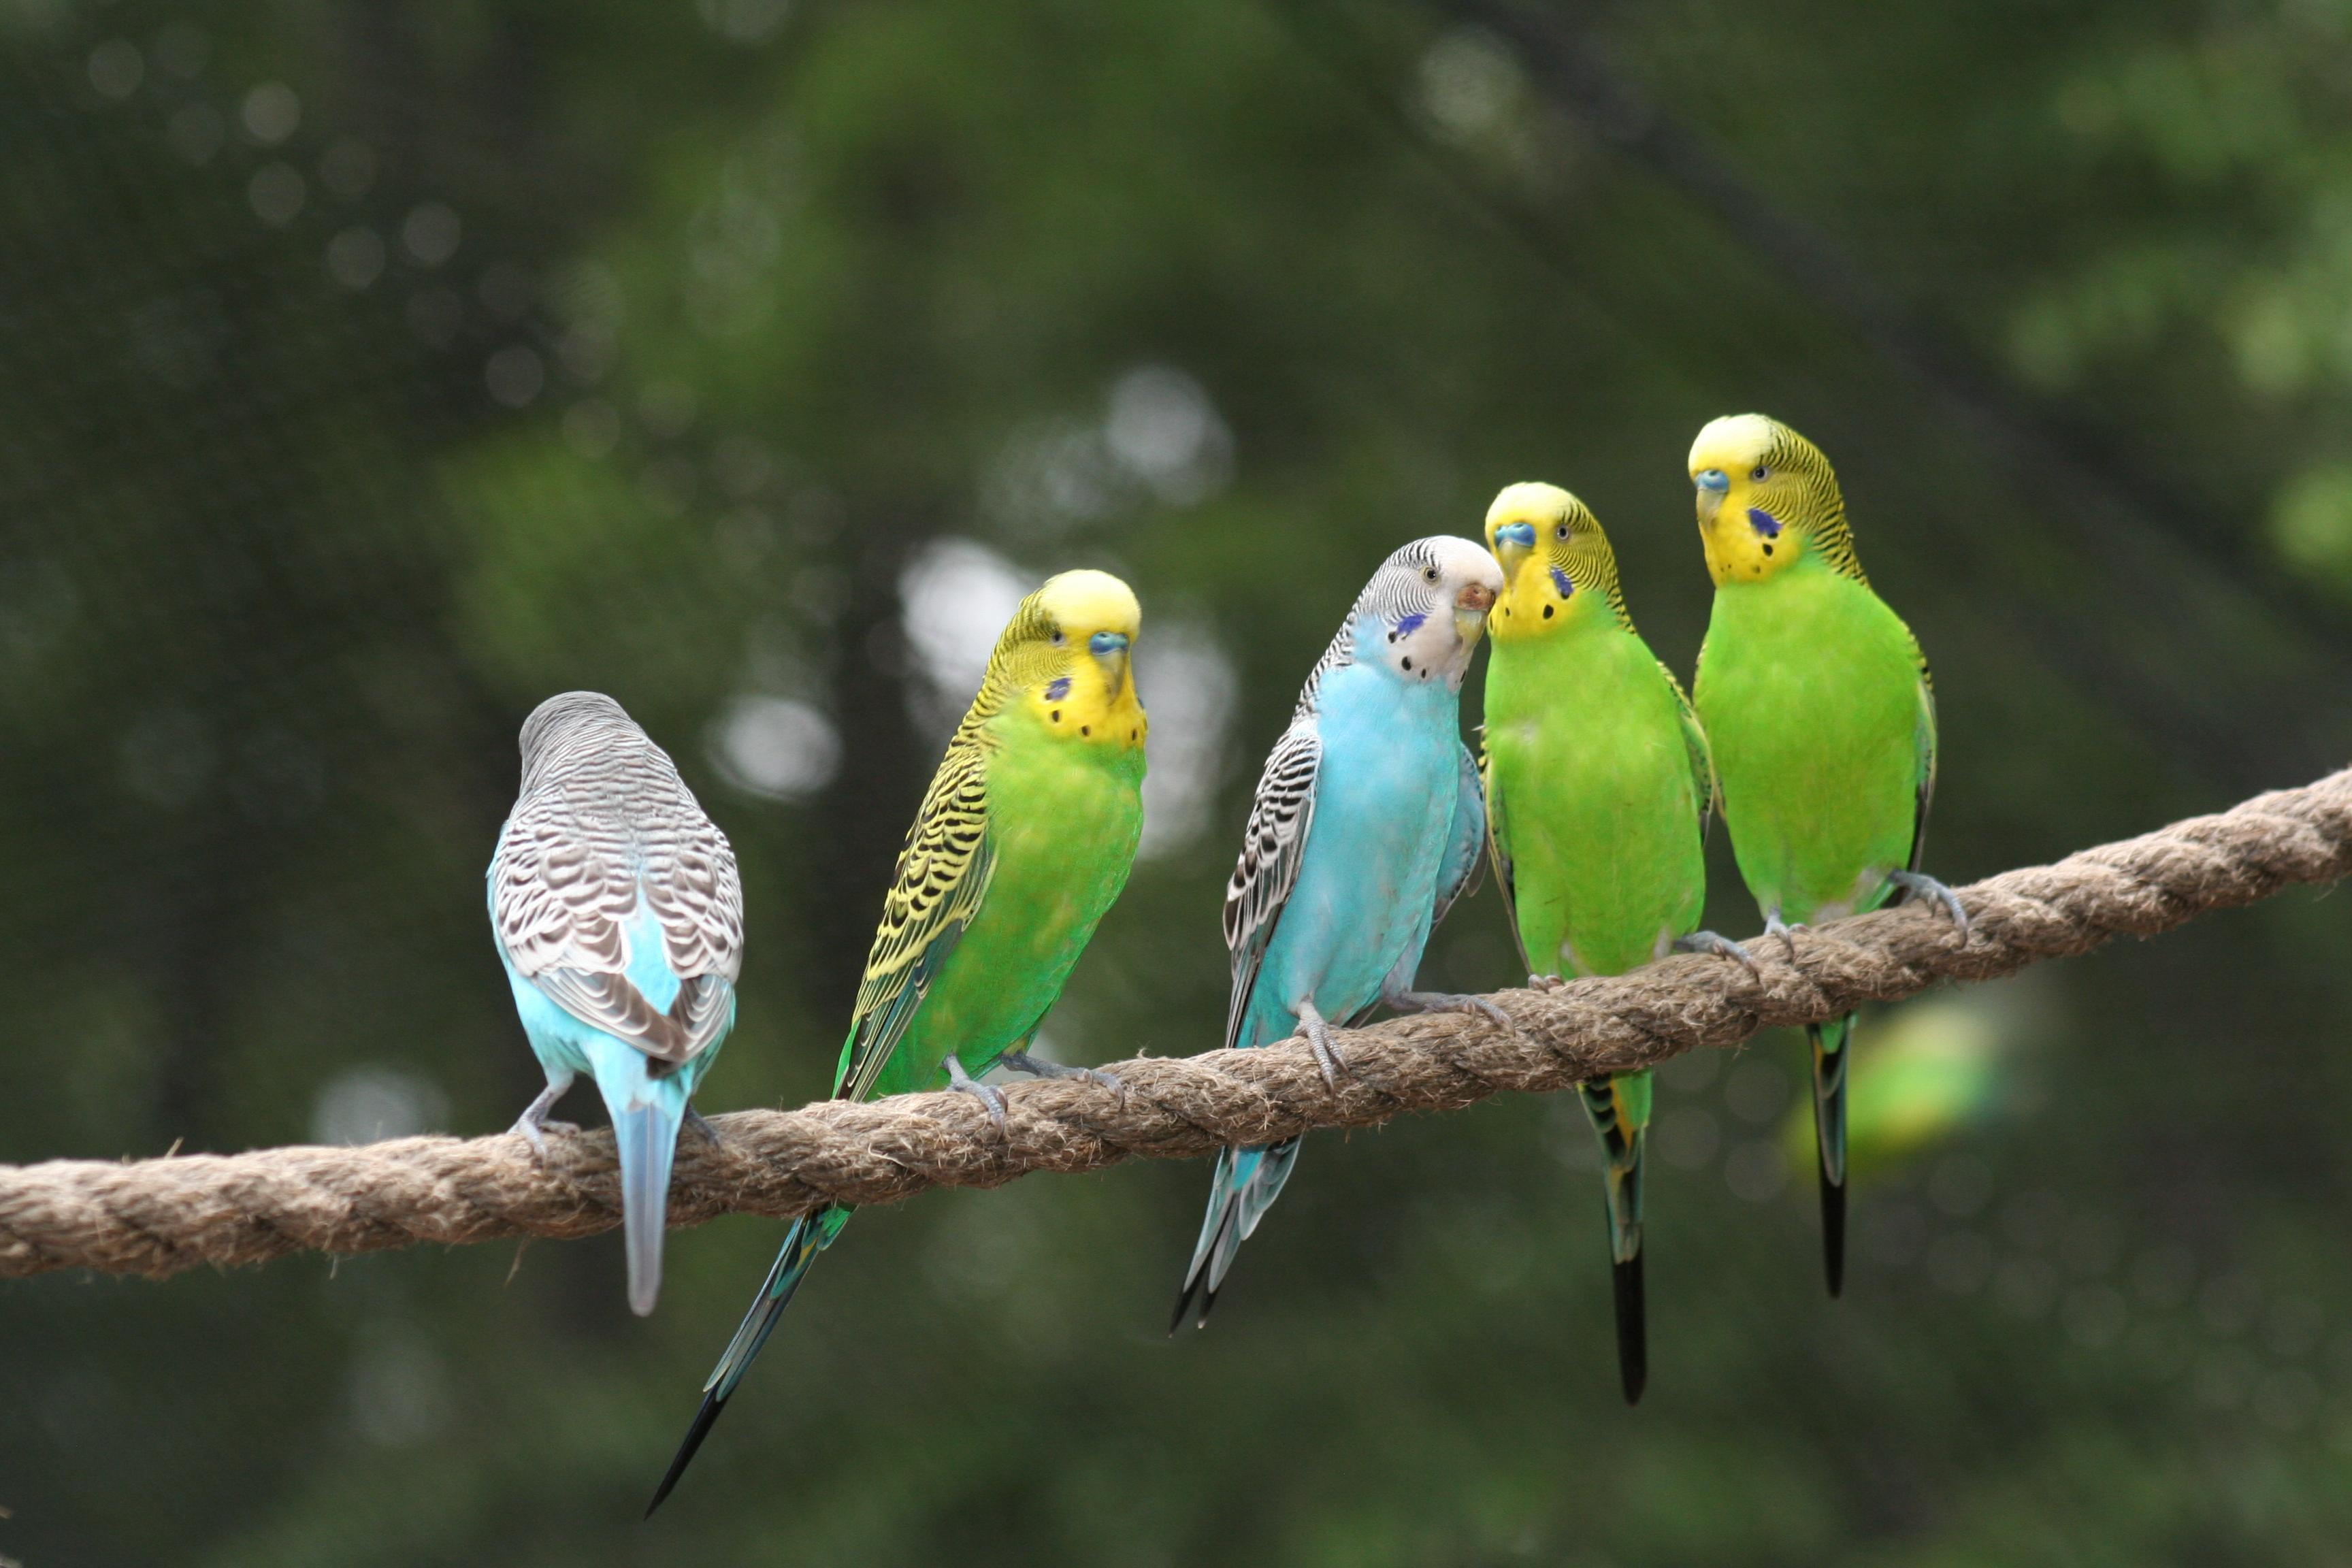 Pictures Of Budgie